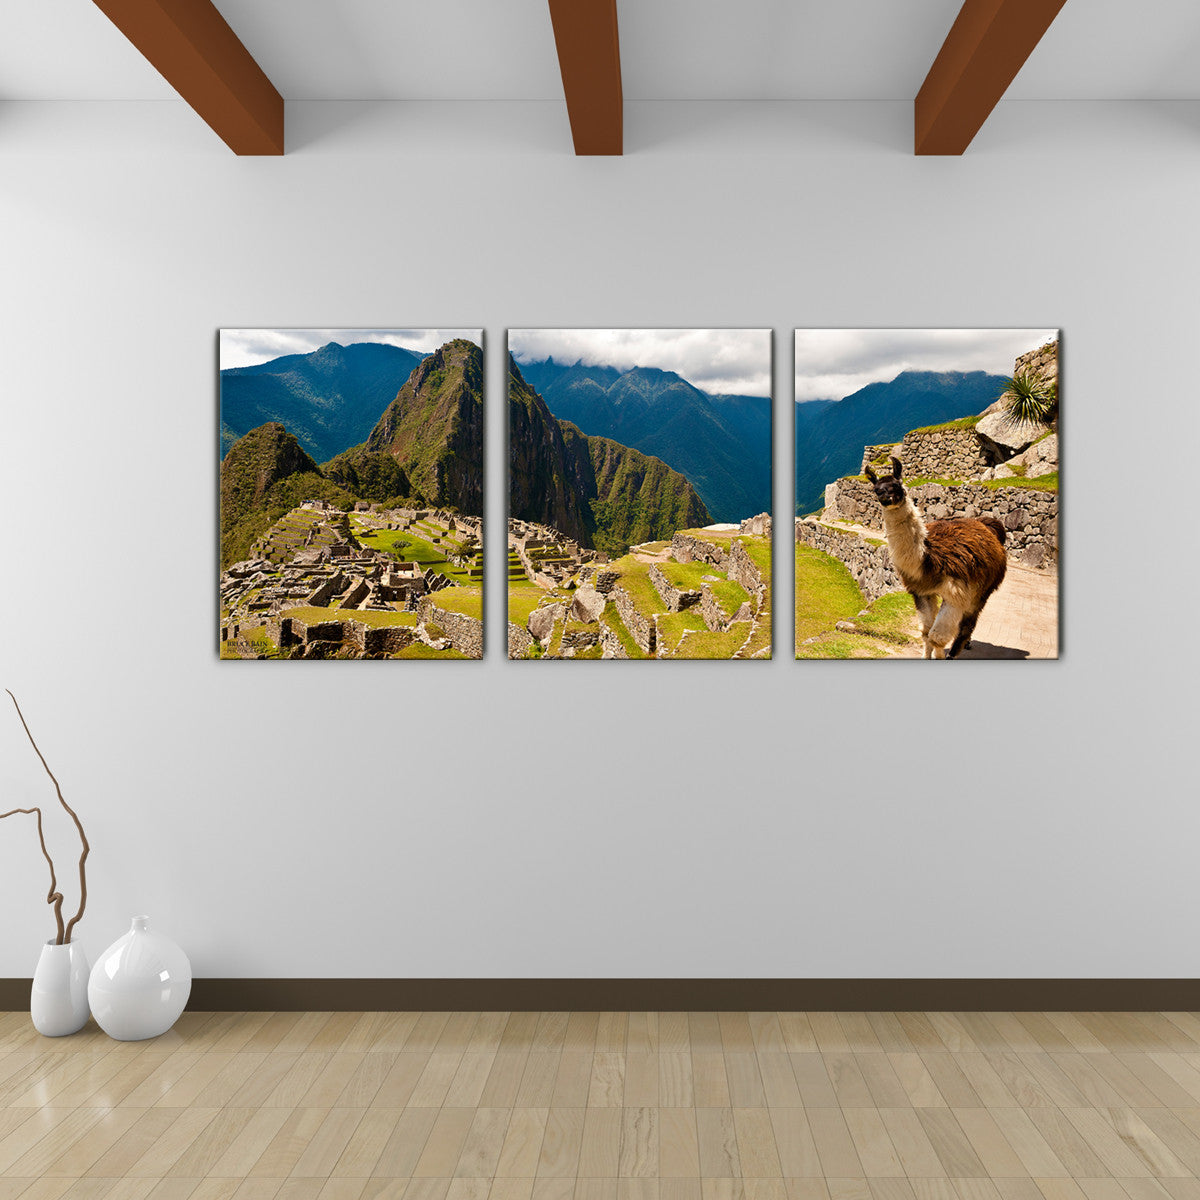 Bruce Bain 'Machu Picchu' 20x48 inch Canvas Wall Art (3-Pc set)